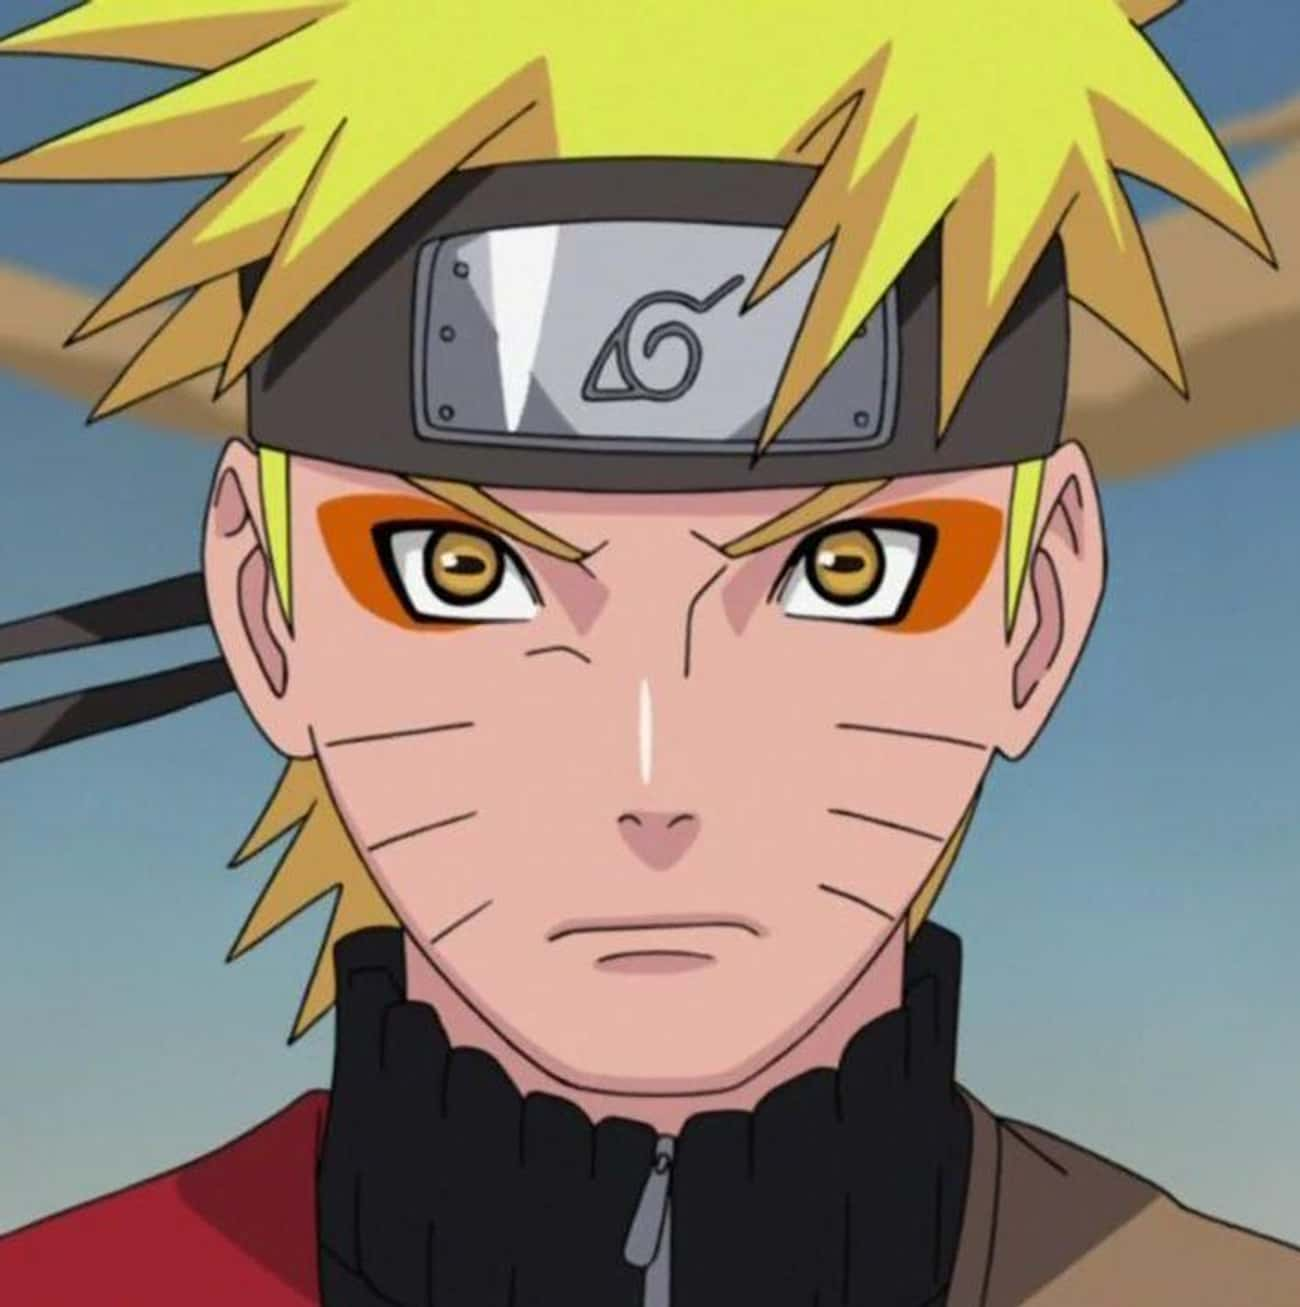 Naruto Shippūden is listed (or ranked) 4 on the list The Best Action Anime of All Time